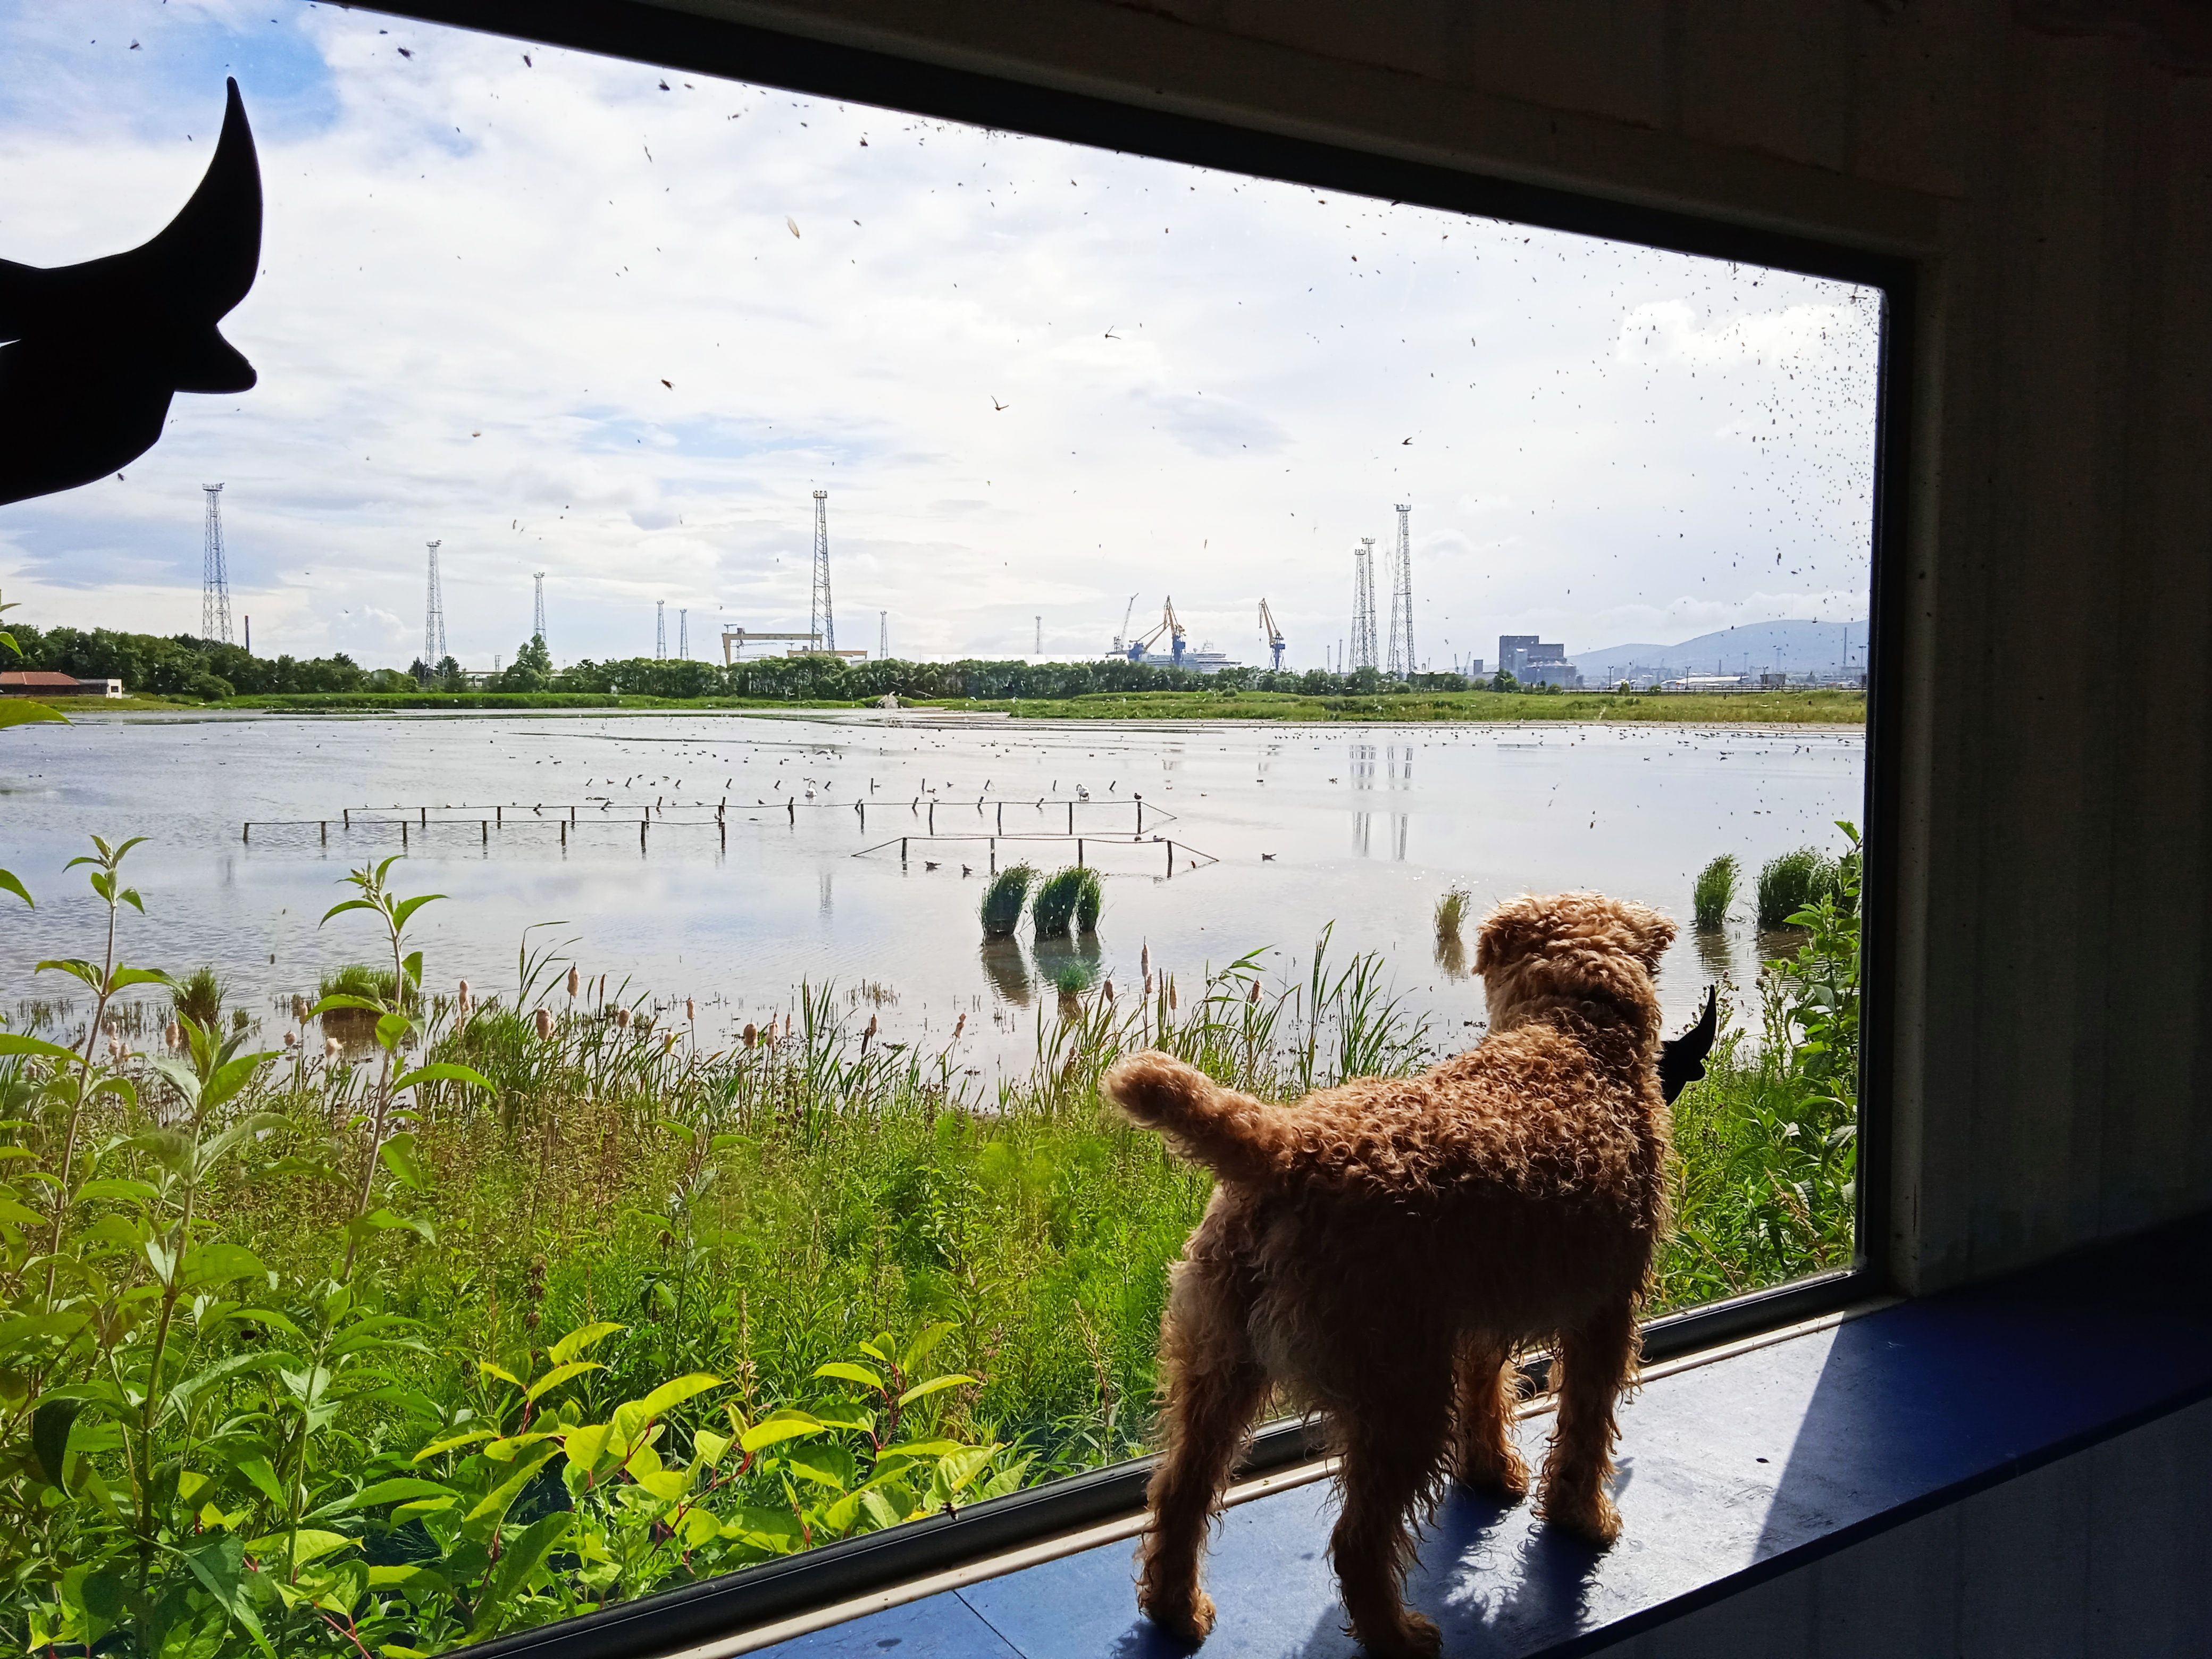 IF ONLY: From the viewing hut, Mac the terrier looks longingly at the Belfast Port nature reserve, which is well guarded to allow birds to nest and breed unbothered by intruders – animal or human